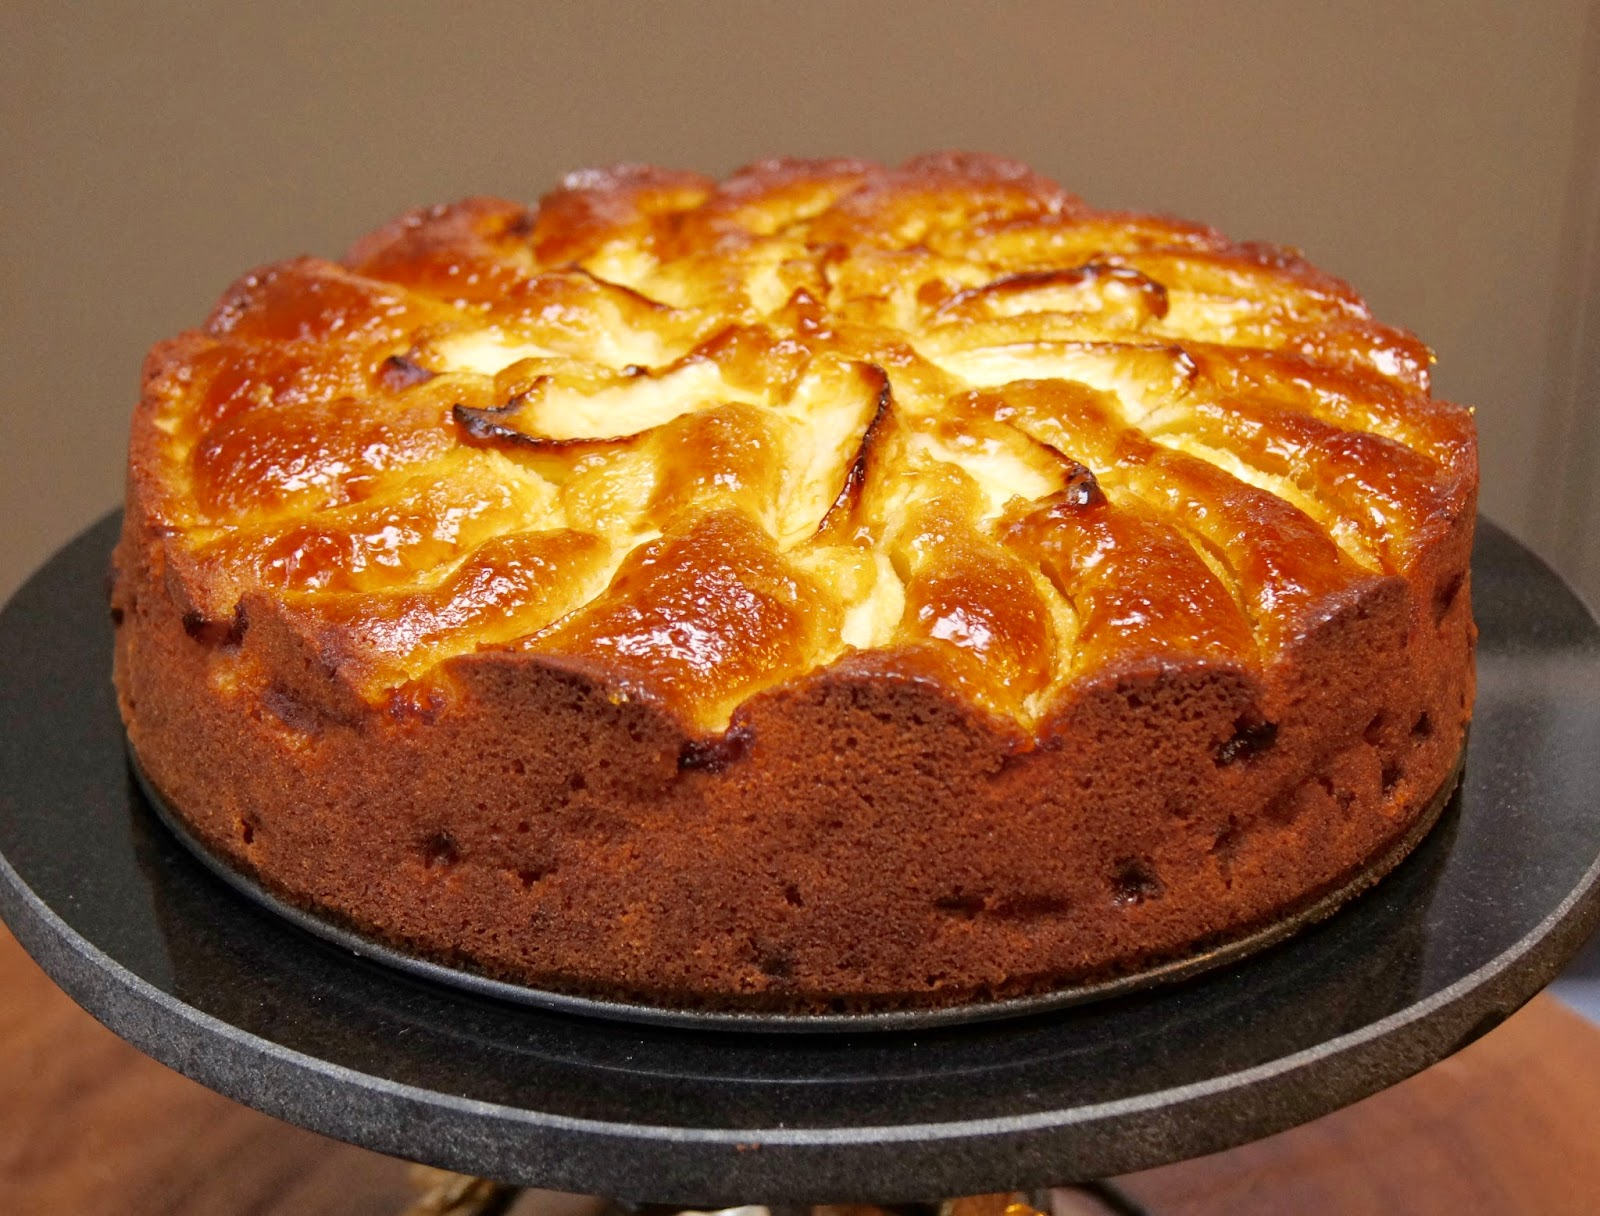 Kuchen Mit Marzipan Apples And Almonds Two Ways Apfel Marzipan Kuchen And